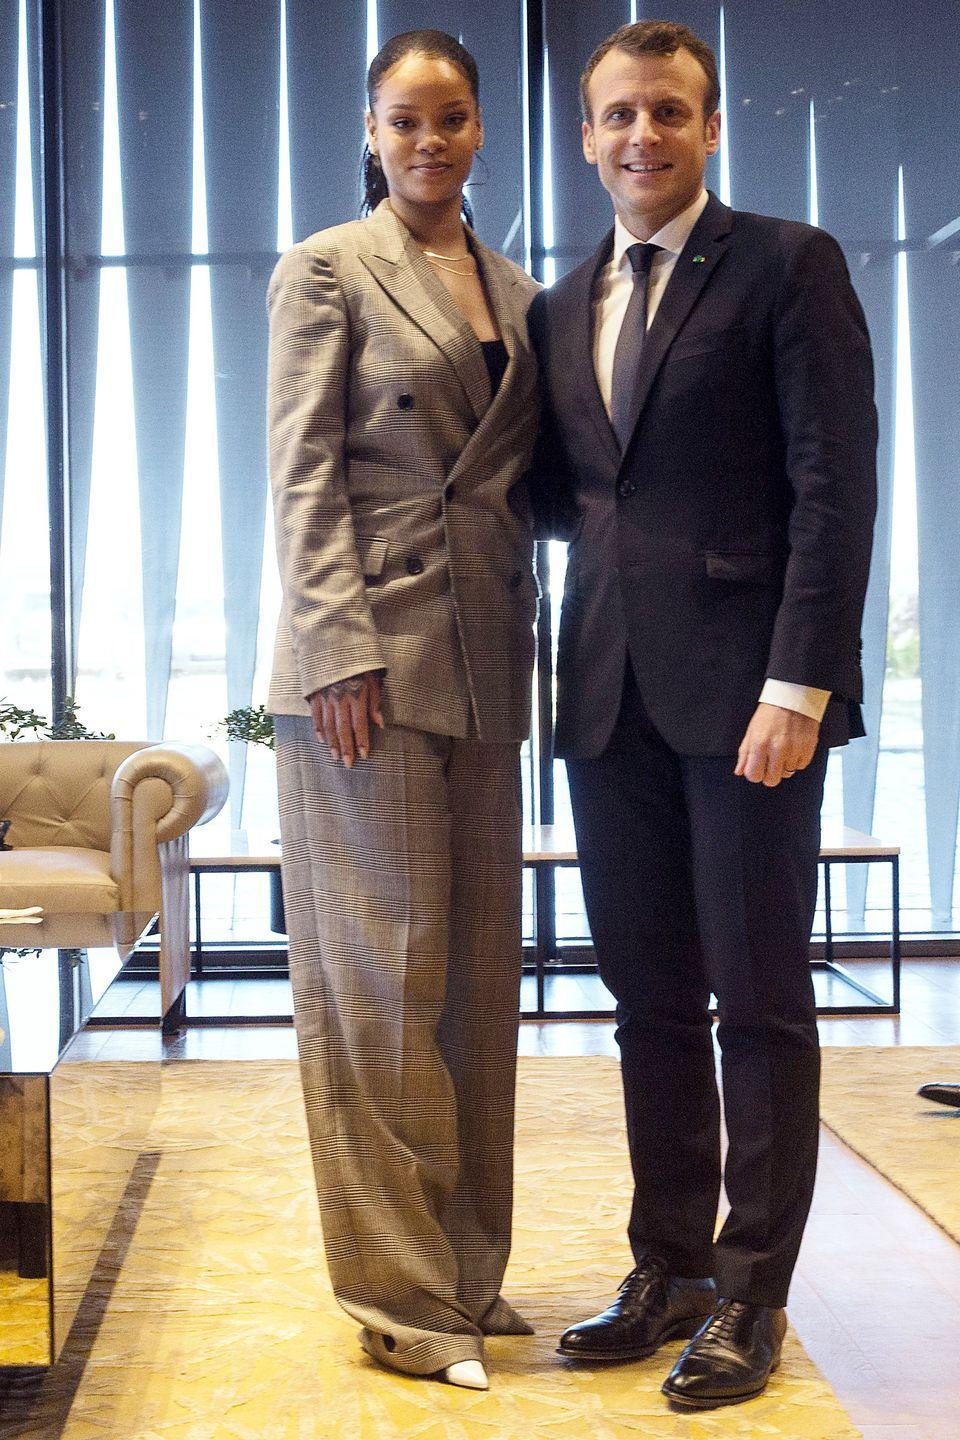 <p>Rihanna wears a gray plaid suit, white pumps, and thin gold necklaces while meeting Emmanuel Macron, the President of France, for a conference hosted by the Global Partnership for Education in Dakar, Senegal.</p>